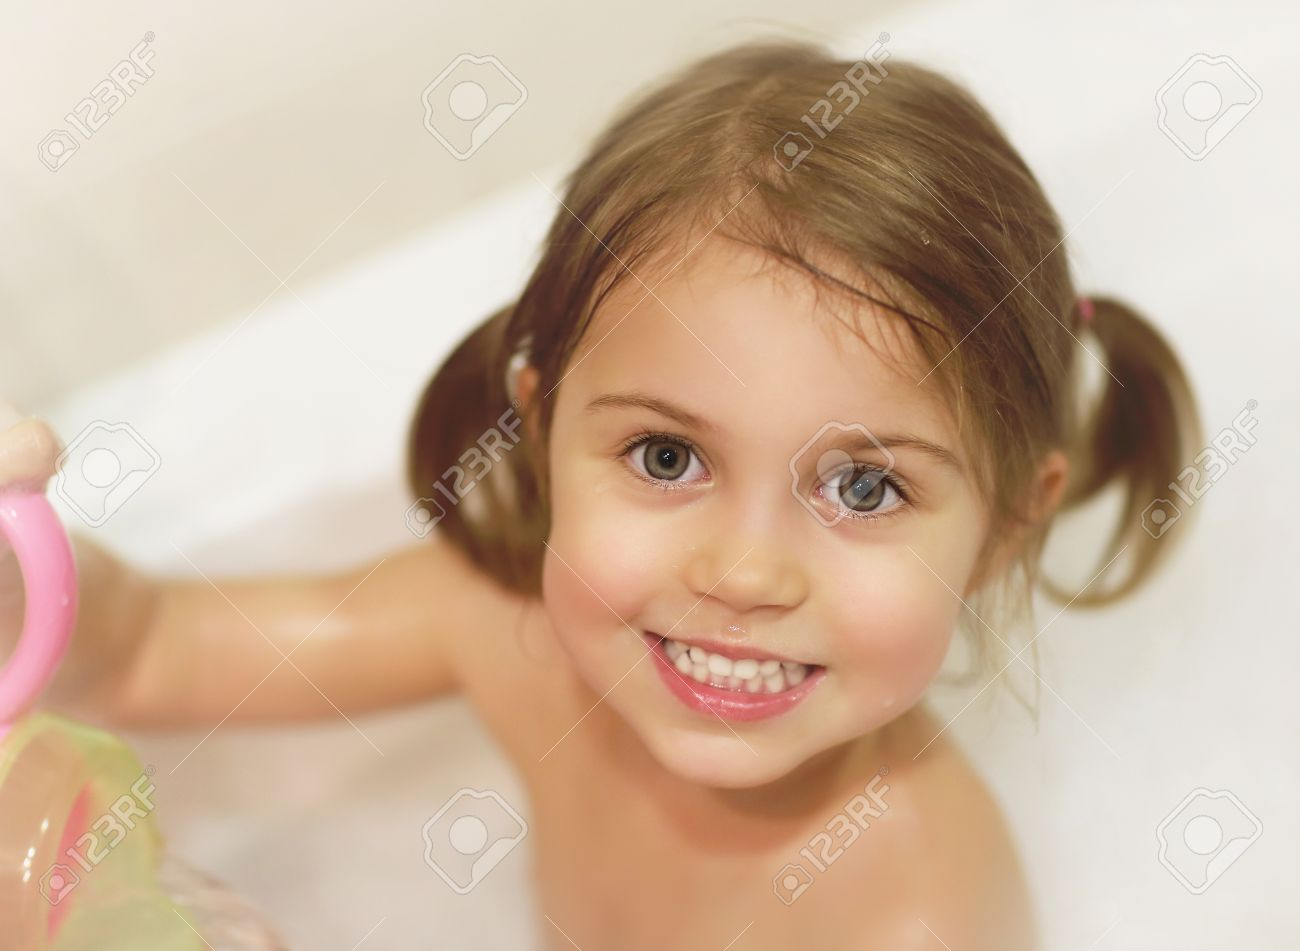 Photo Of Cute Baby Girl Taking Bath, Happy Childhood, Child\'s ...